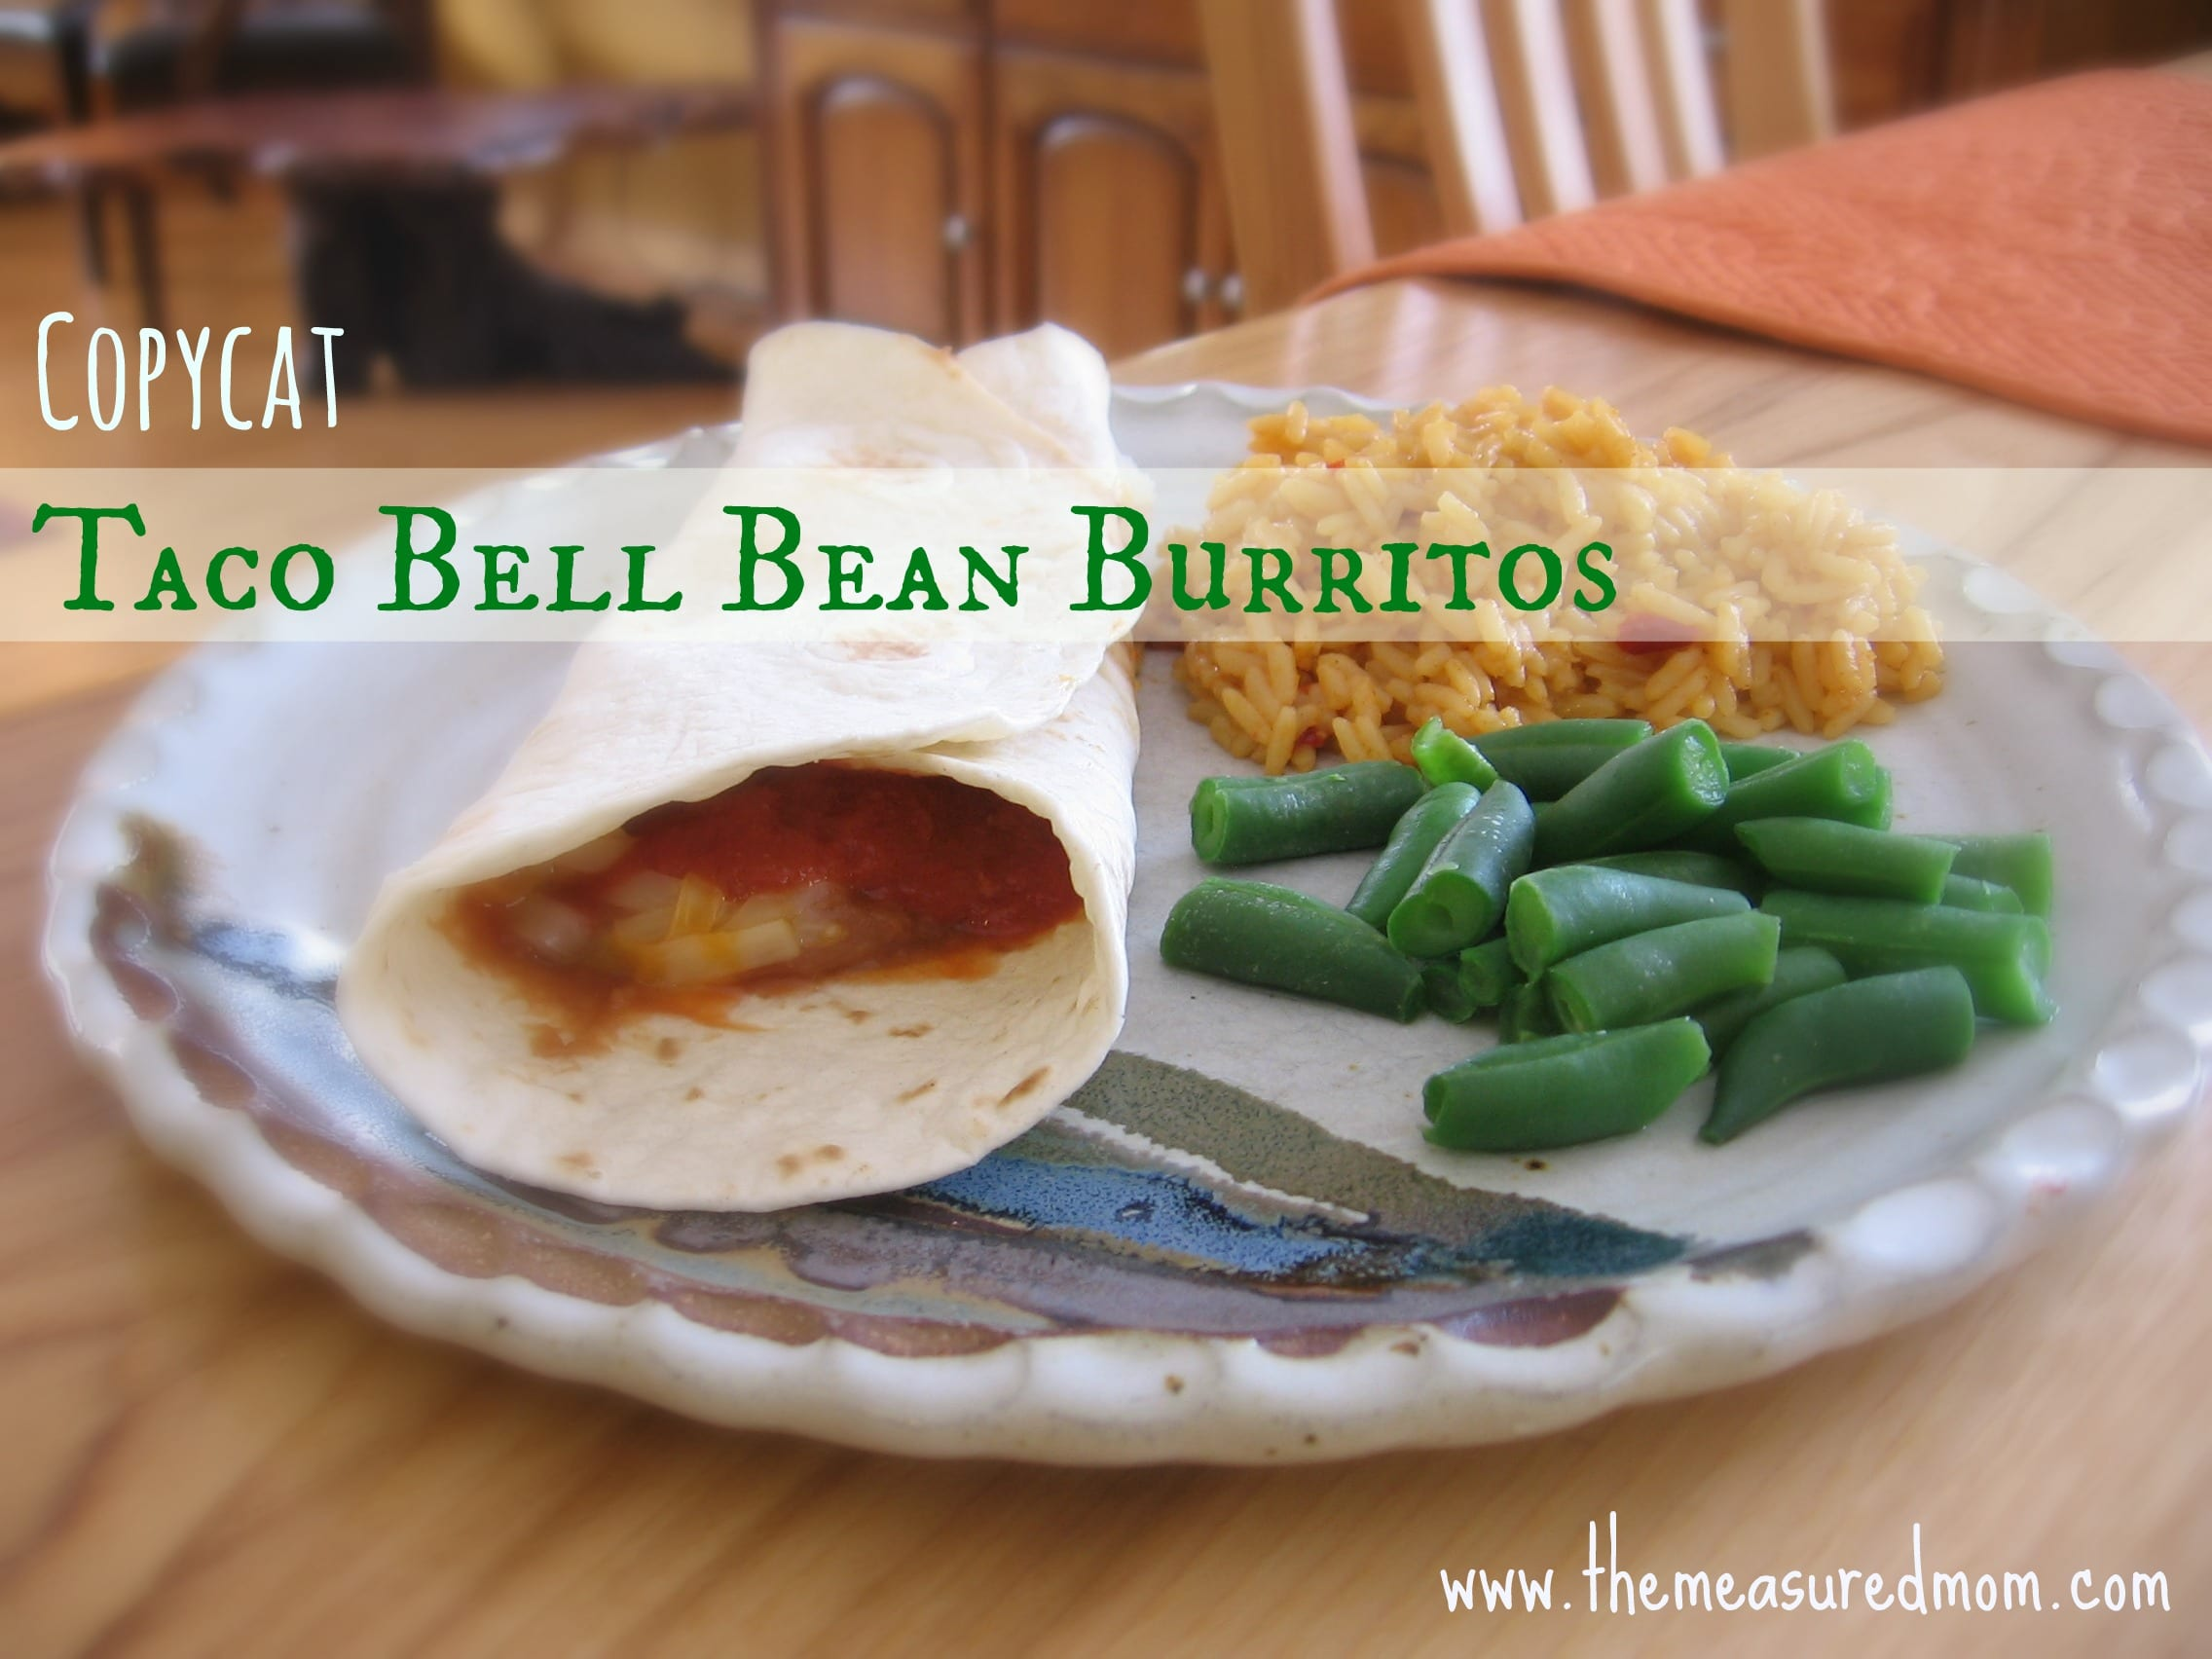 Copycat Taco Bell Bean Burritos The Measured Mom